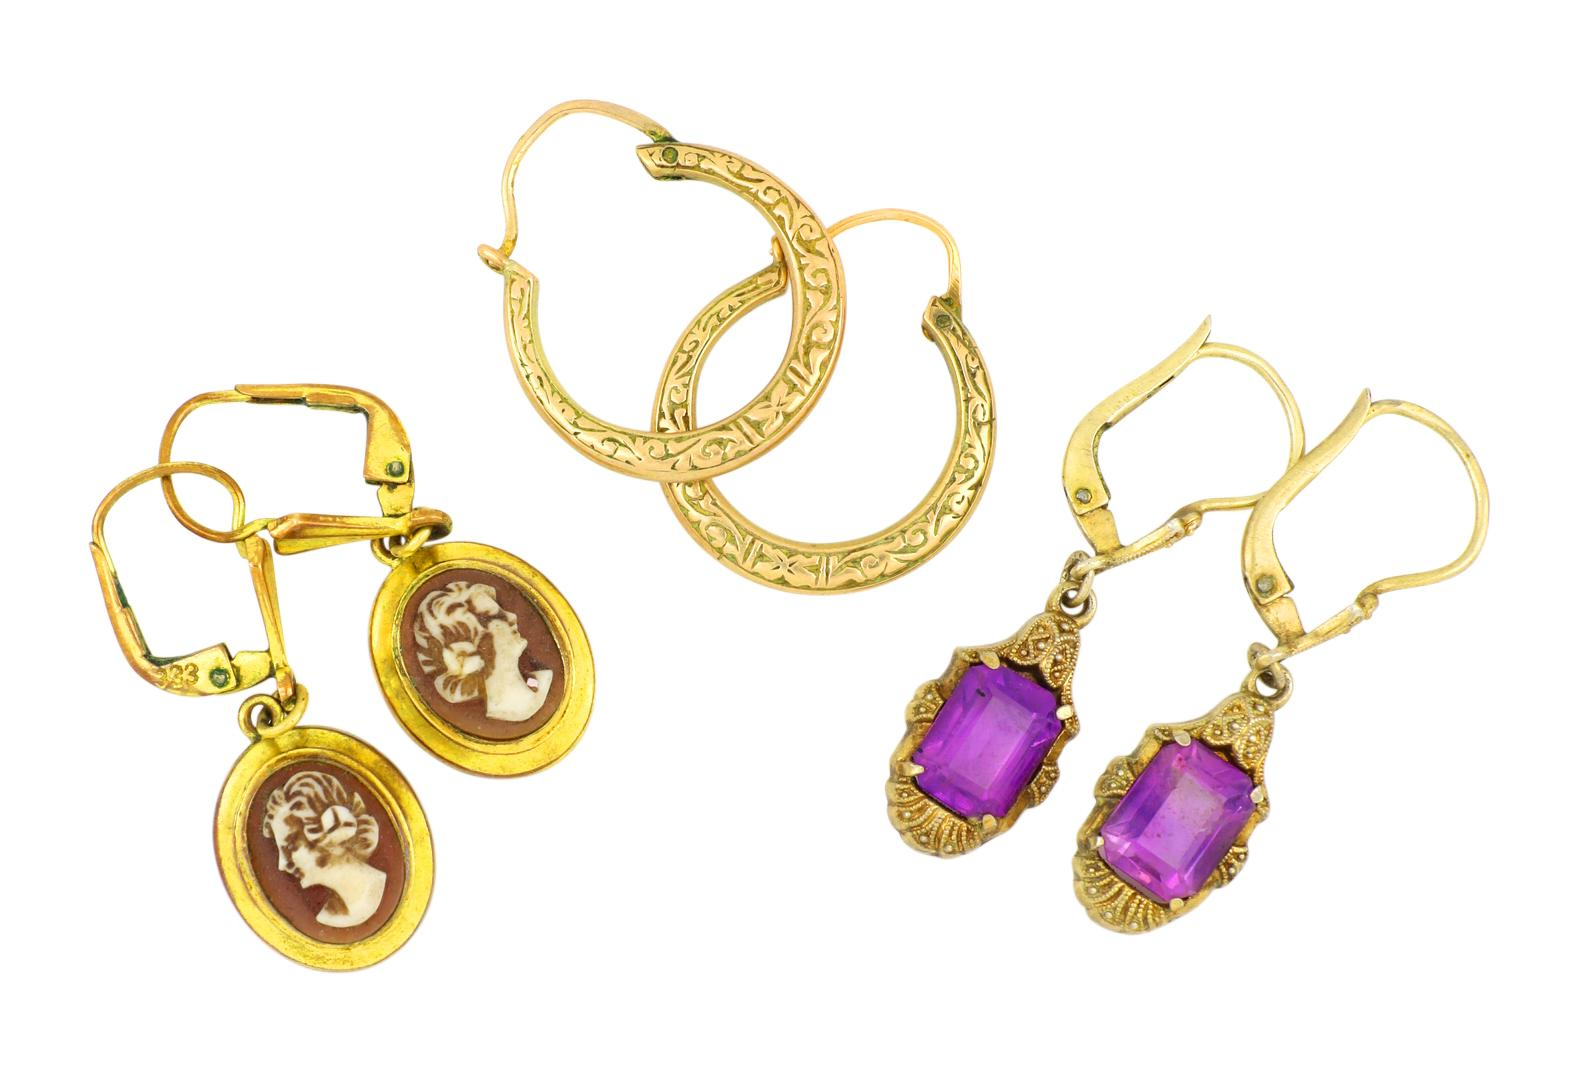 Vintage cameo, amethyst and gold hoop earrings